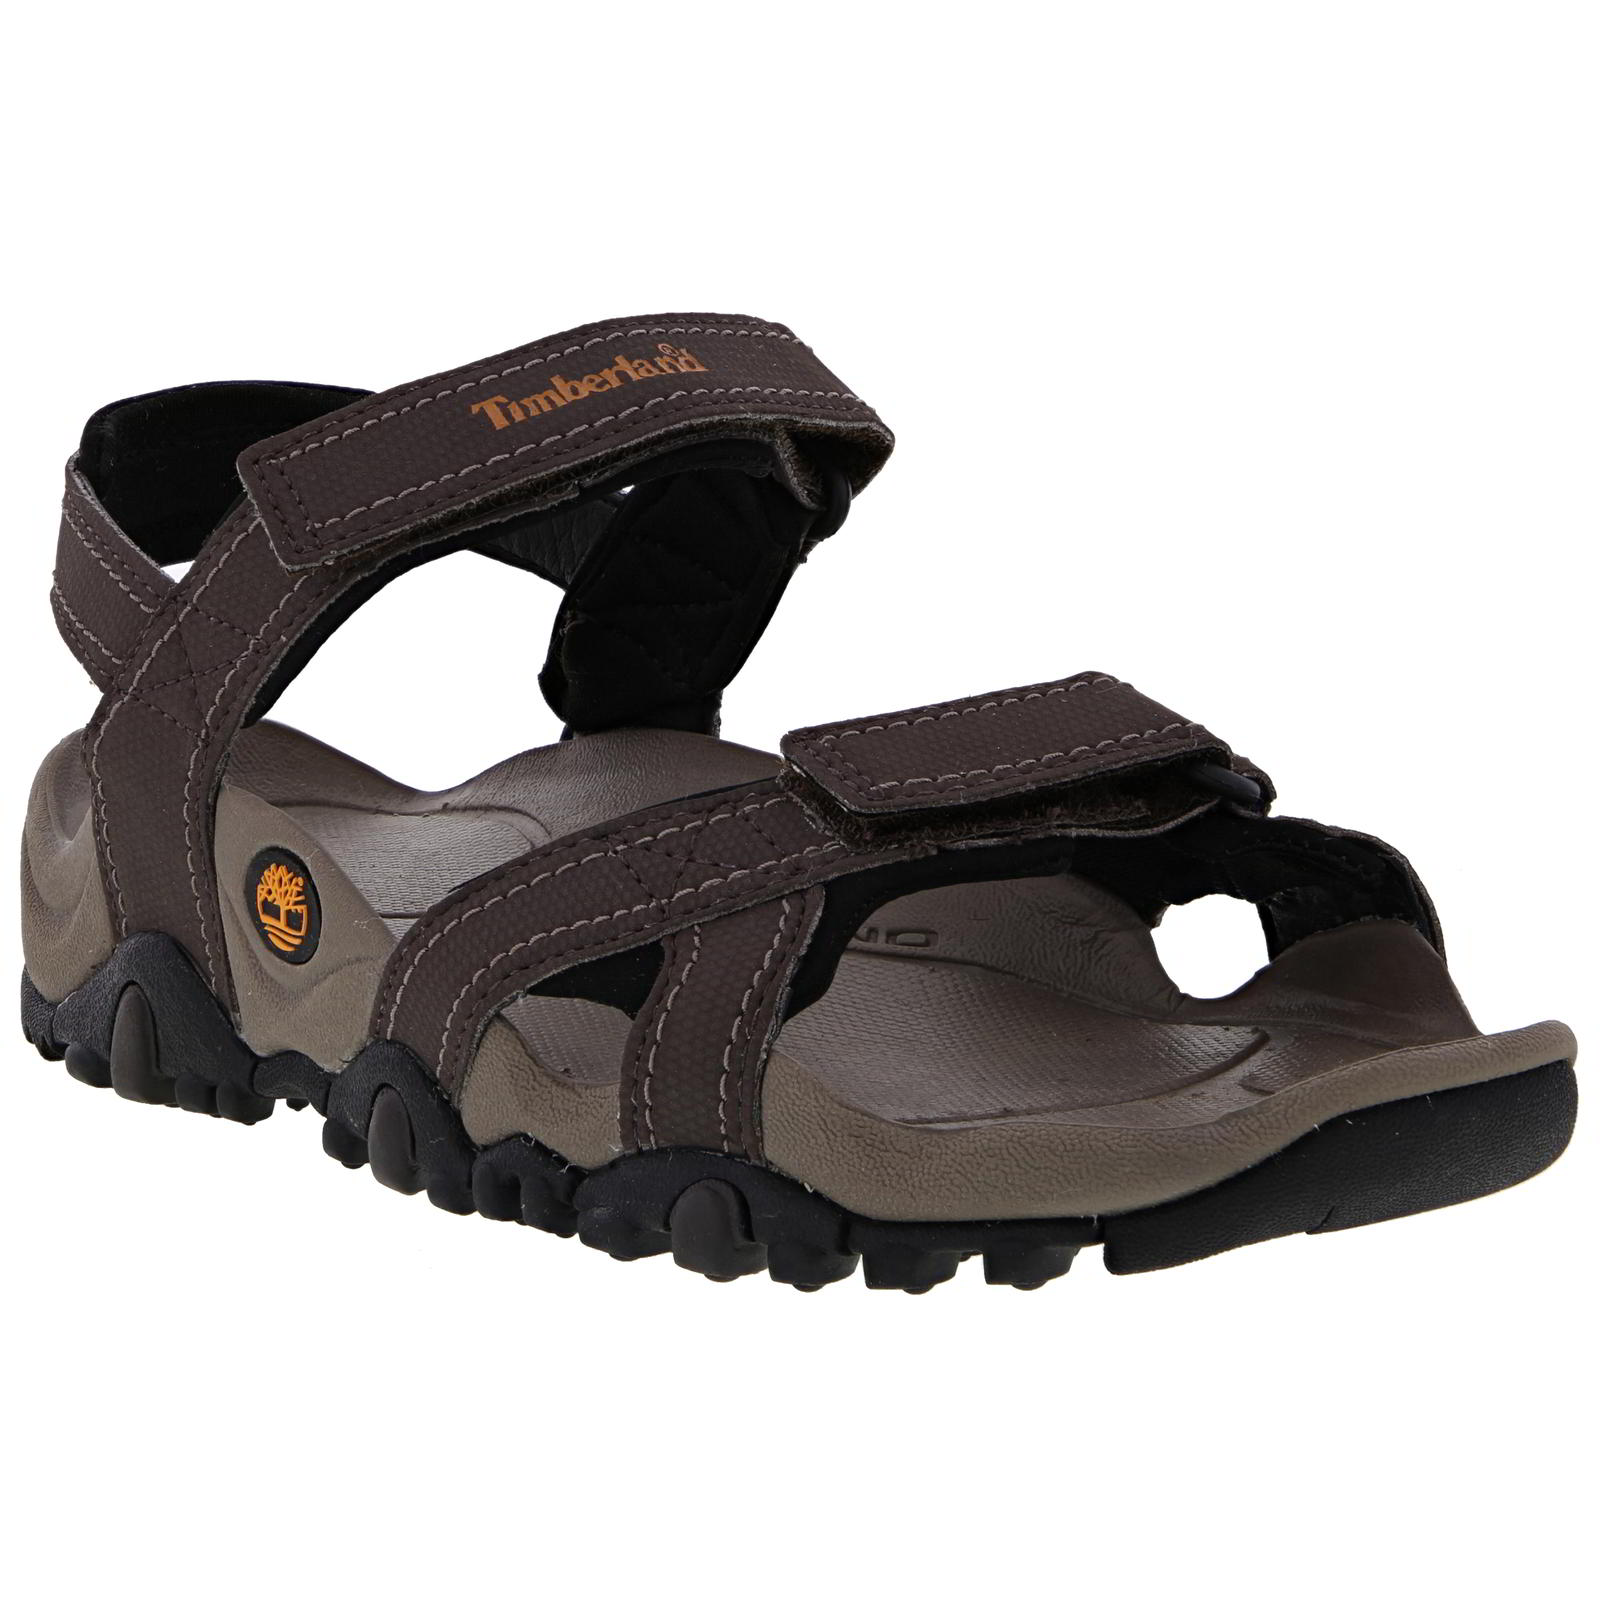 305e62820f Details about Timberland Sandals Mens Granite Trail Series Brown Adjustable  Shoes Size 7.5-12